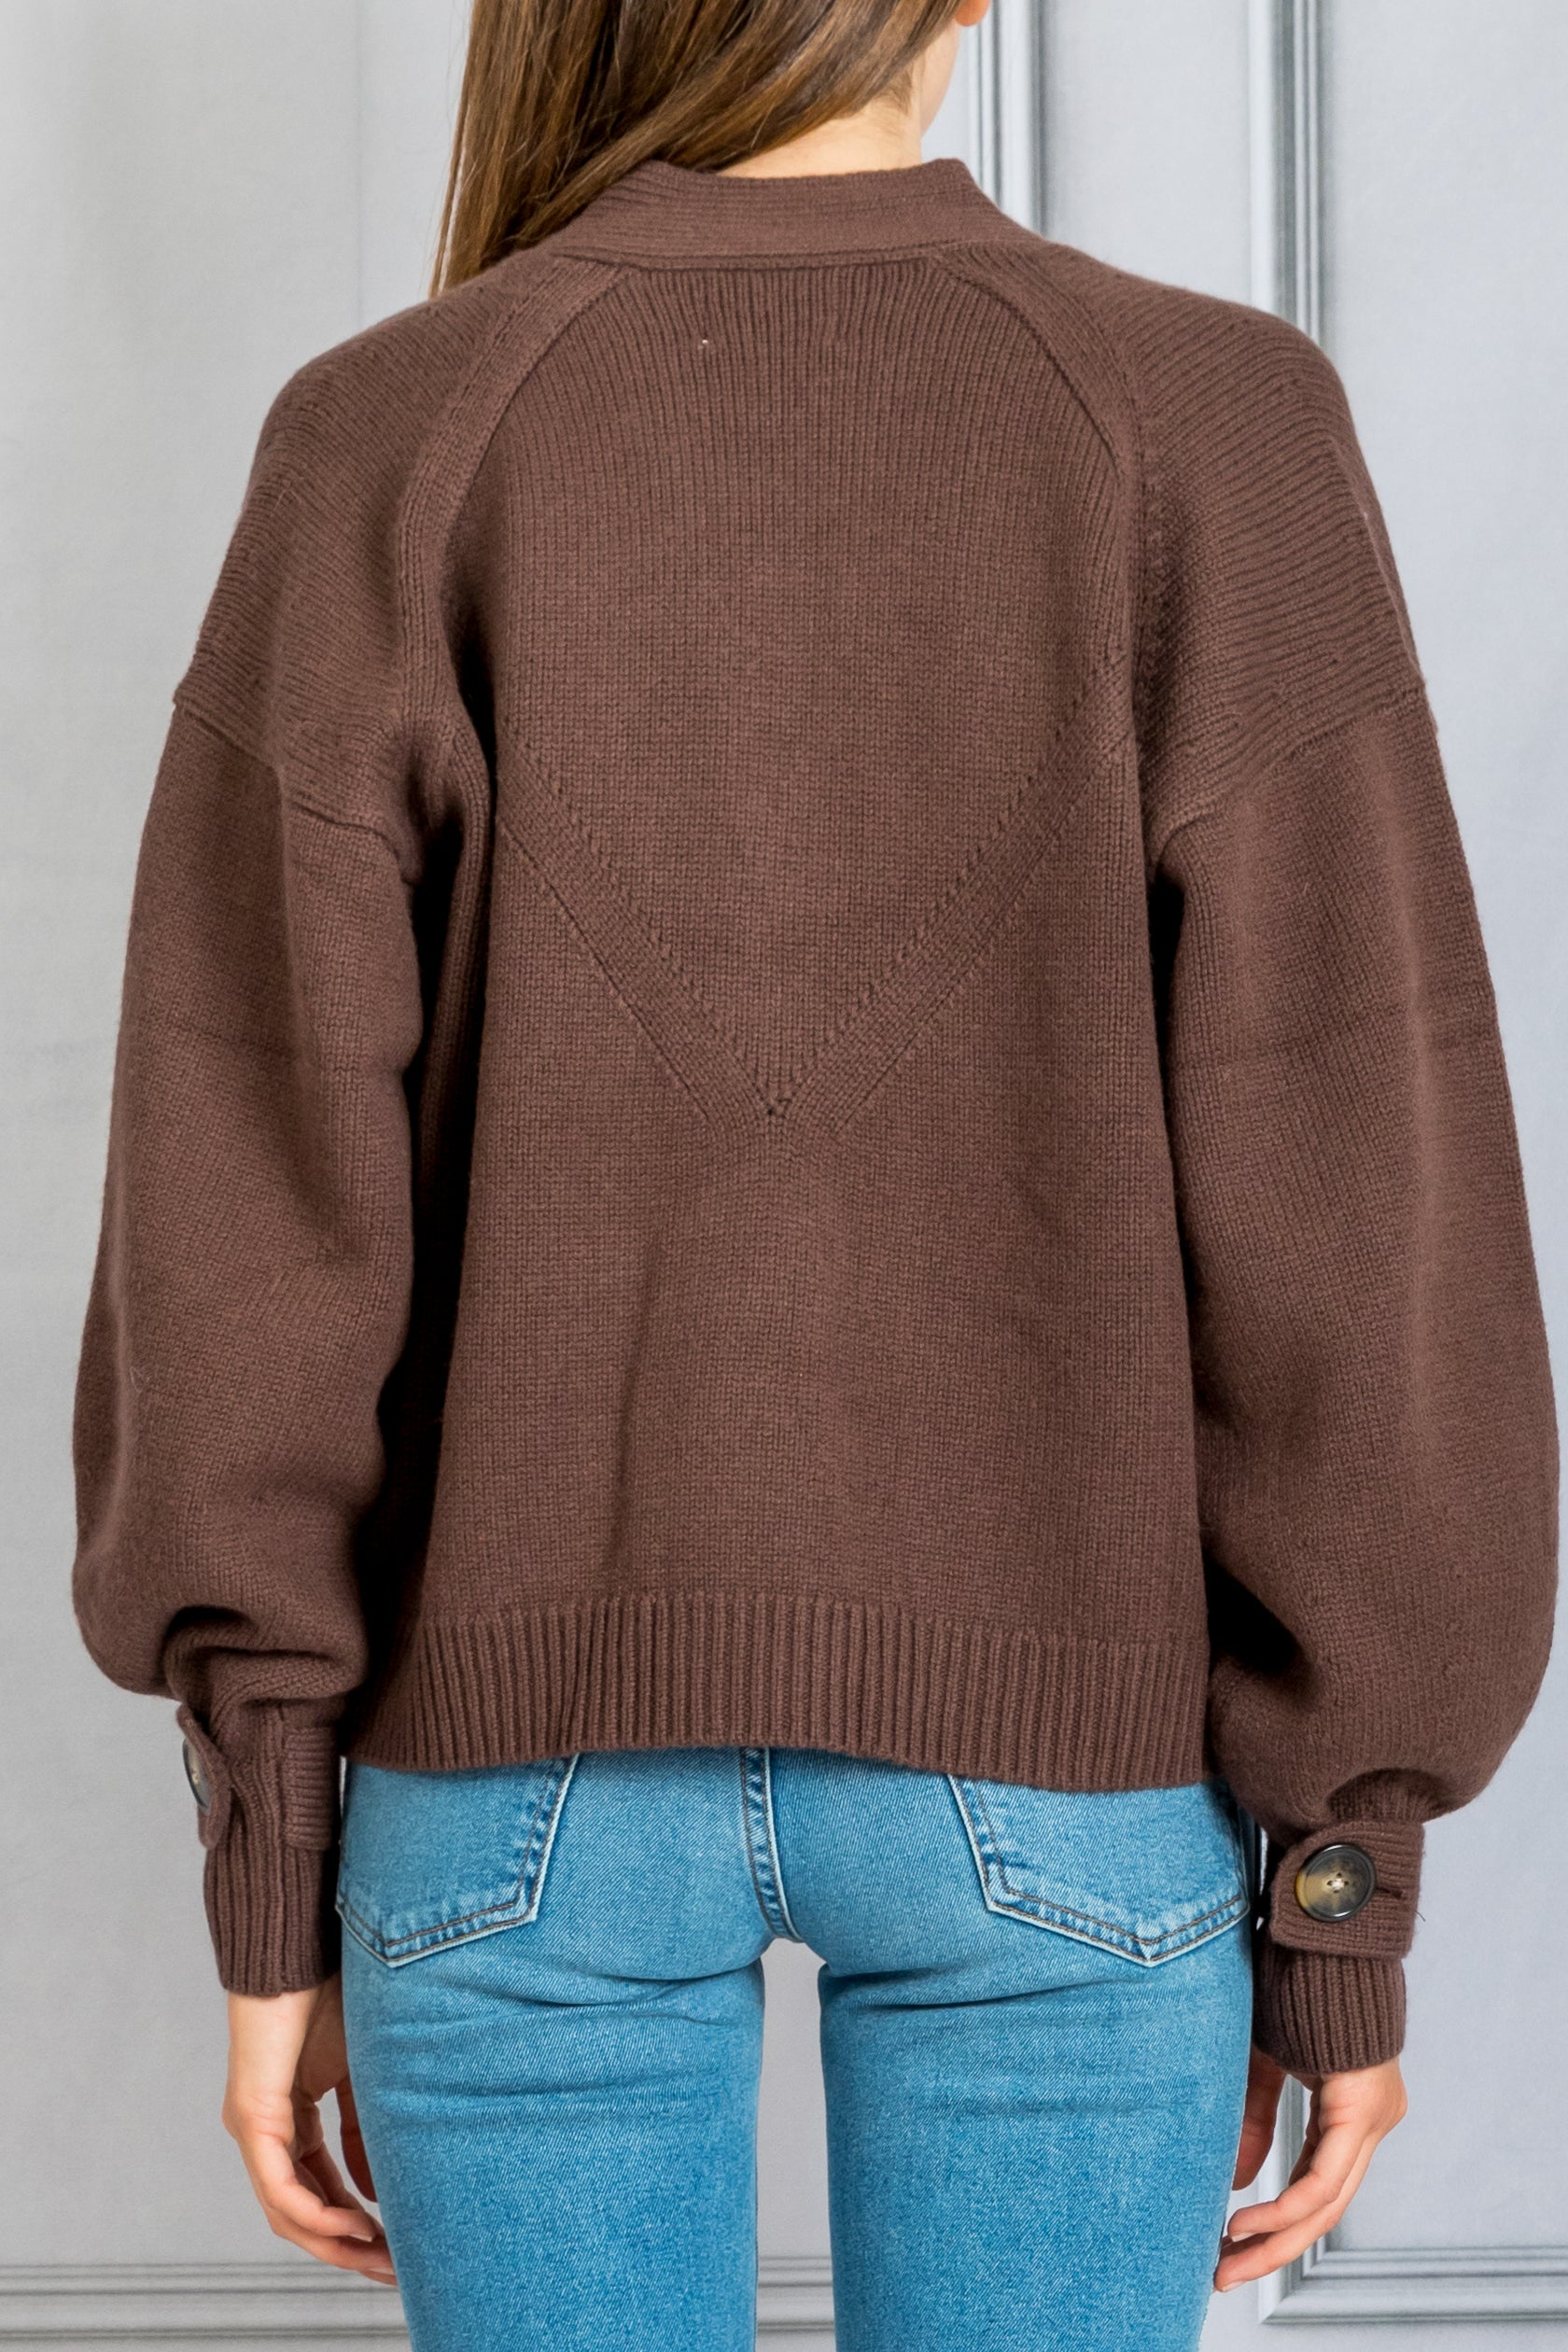 Tiberine Cardigan Sweater - Dark Brown